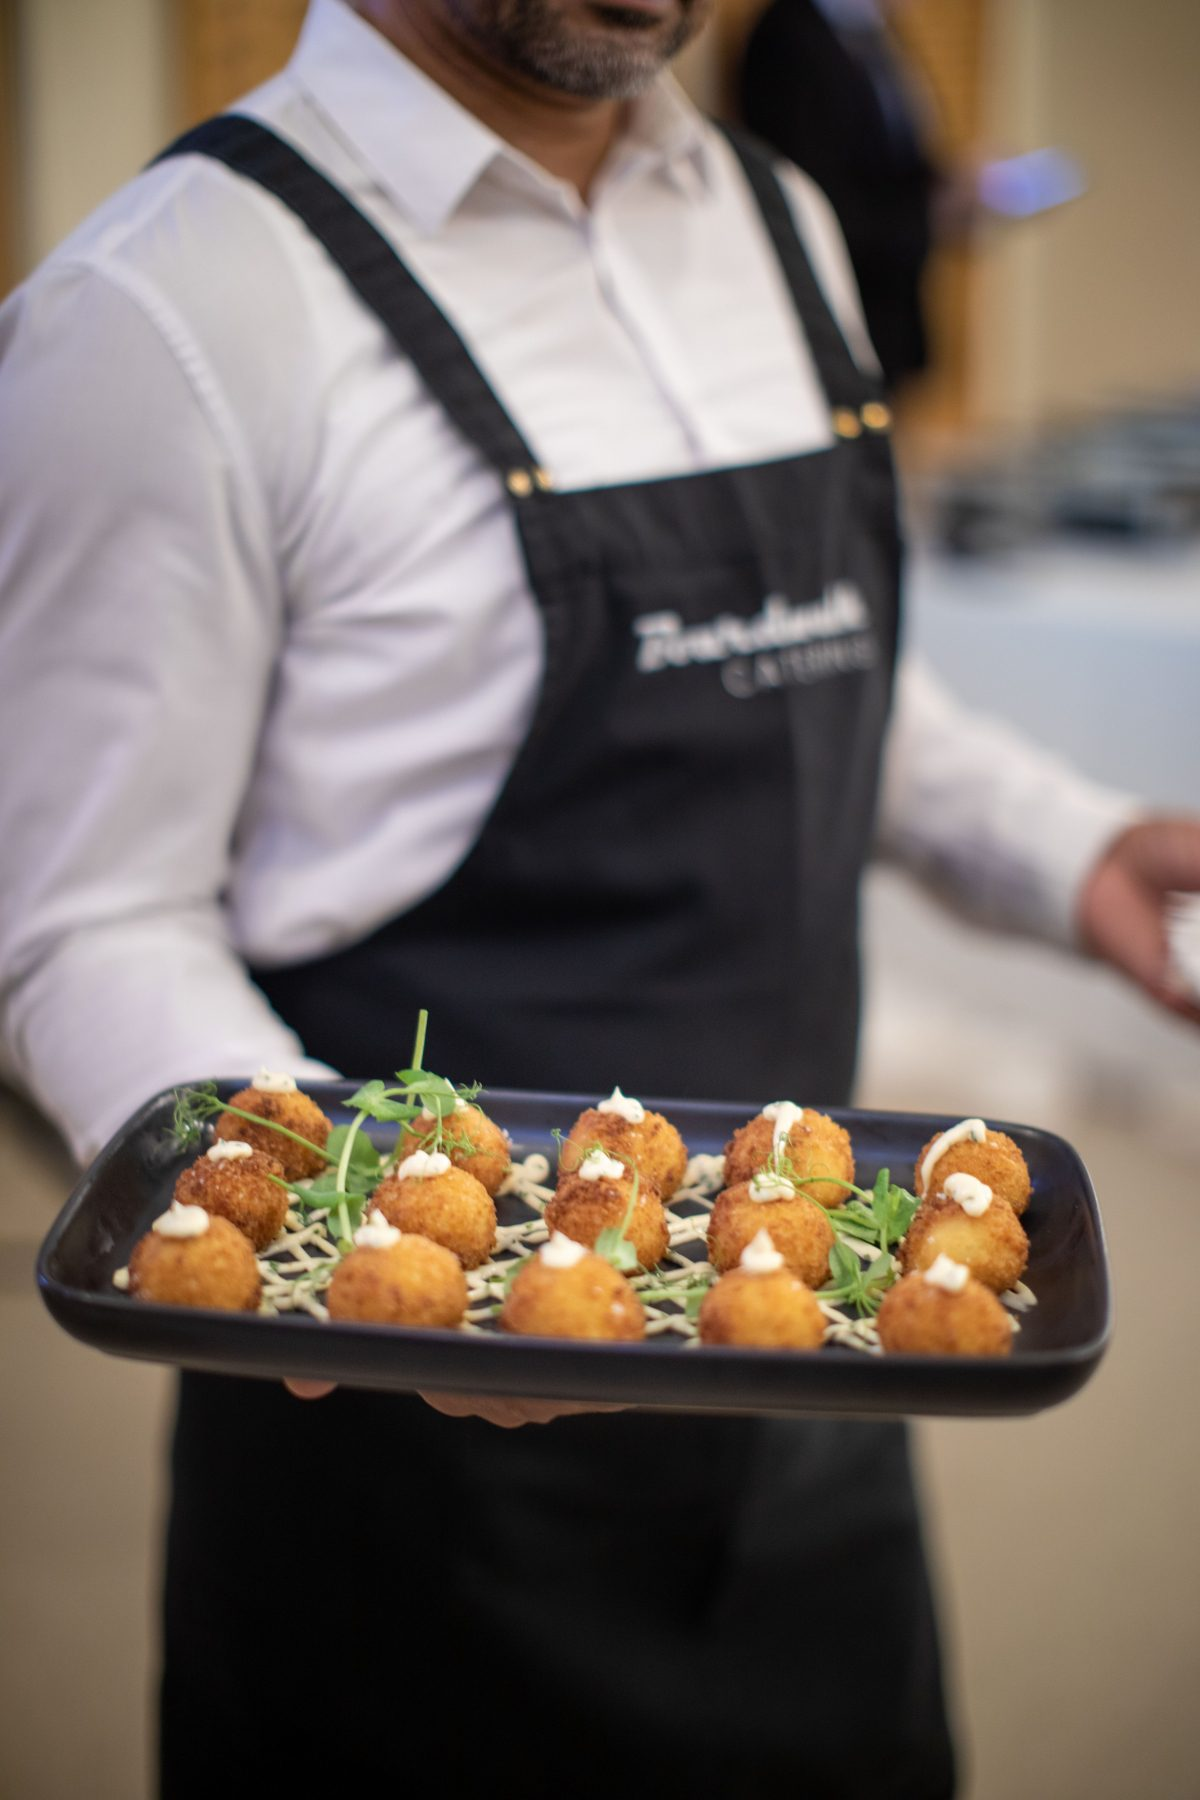 Canapes for wedding reception catering in Sydney